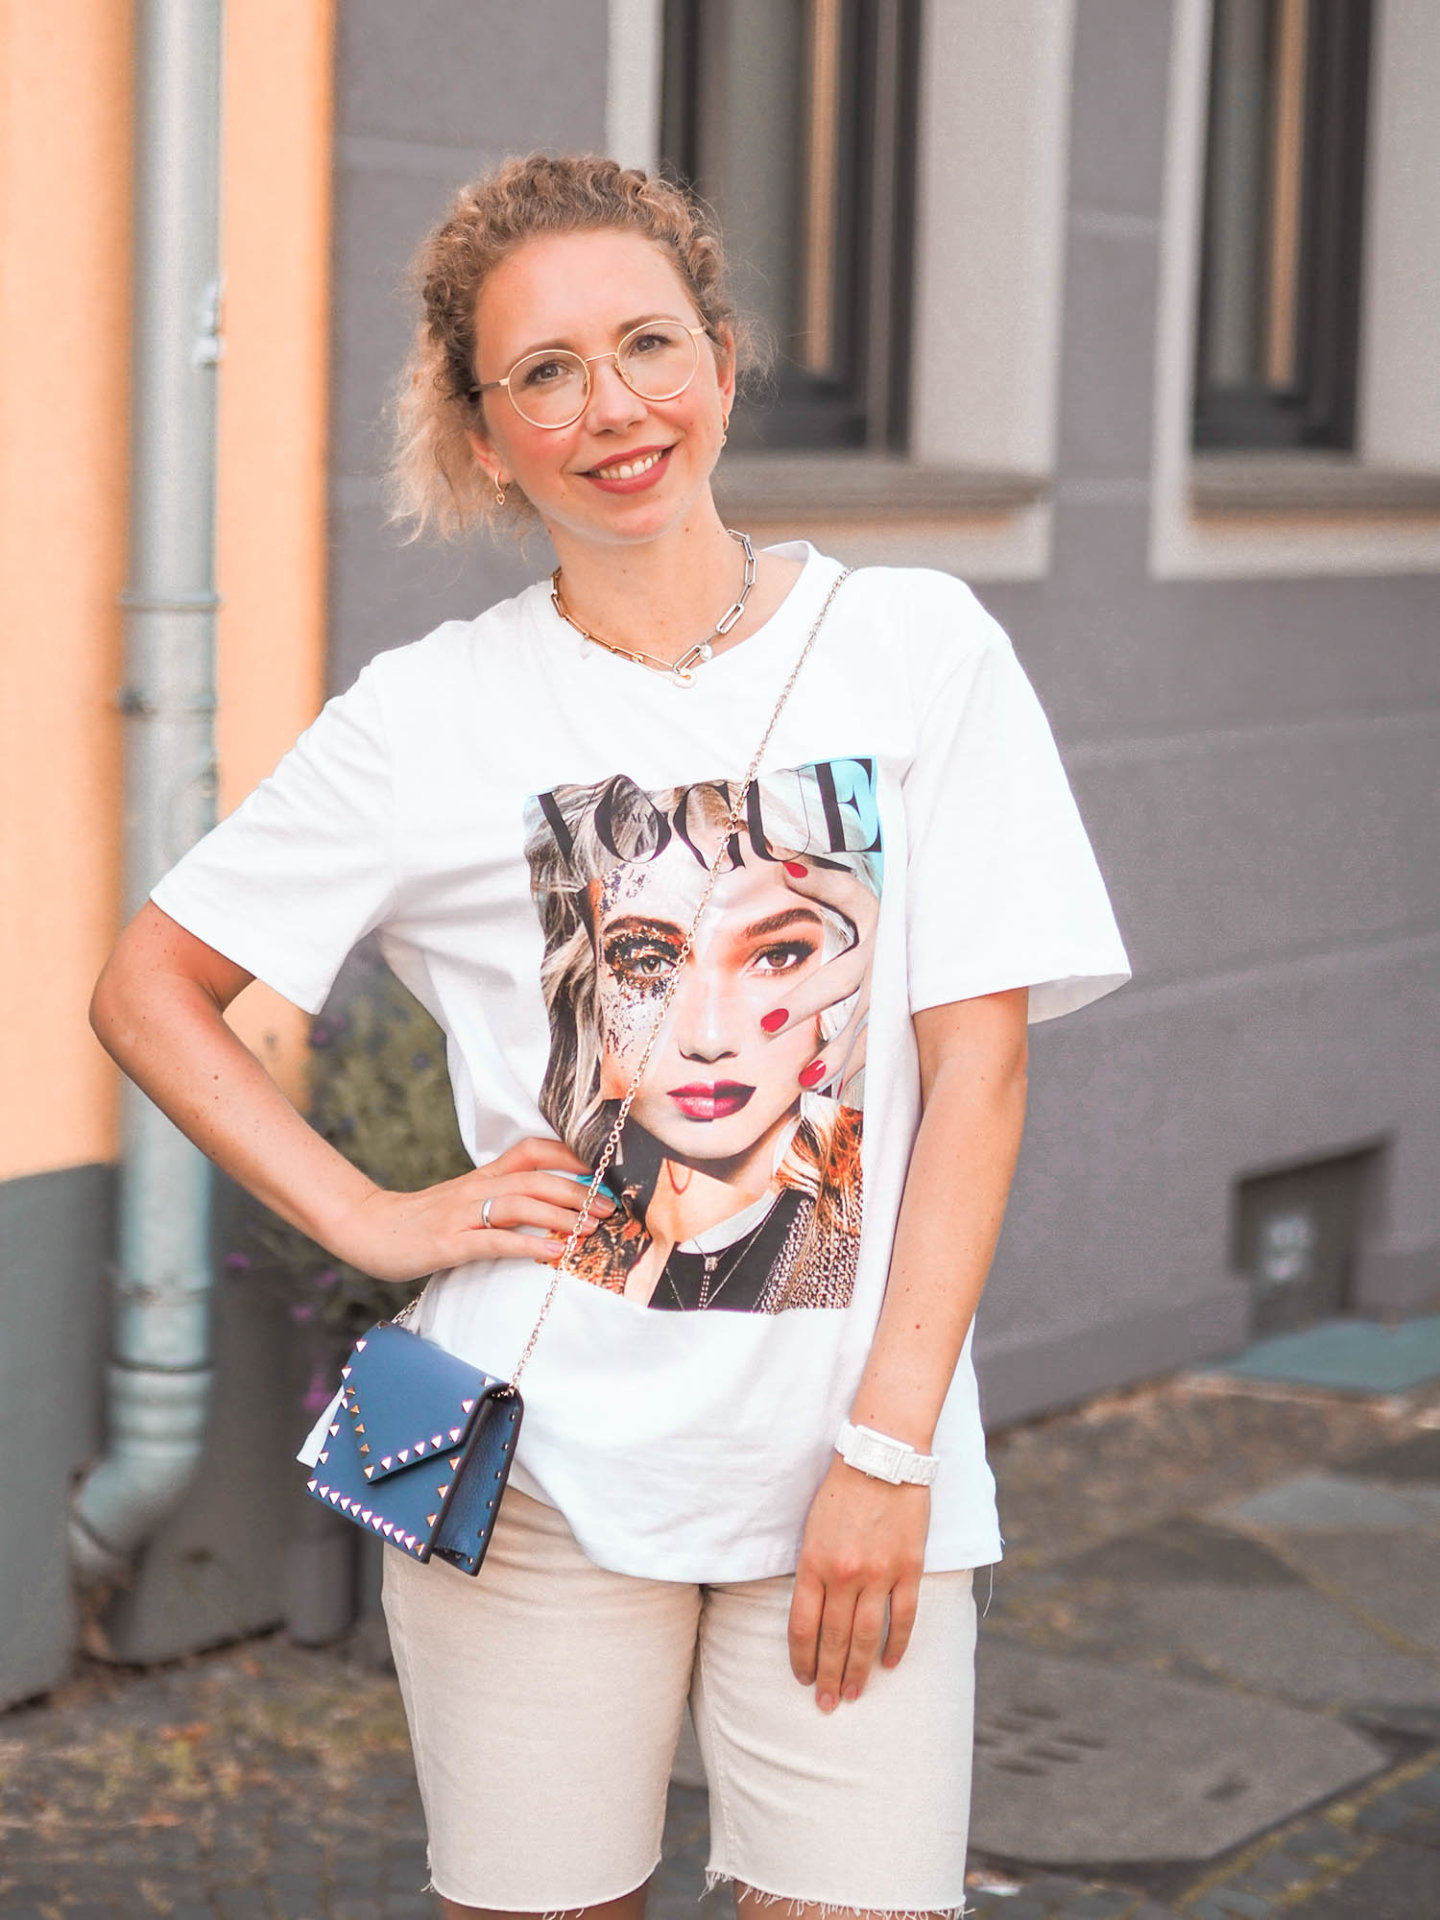 Fashiontrend VOGUE T-Shirt